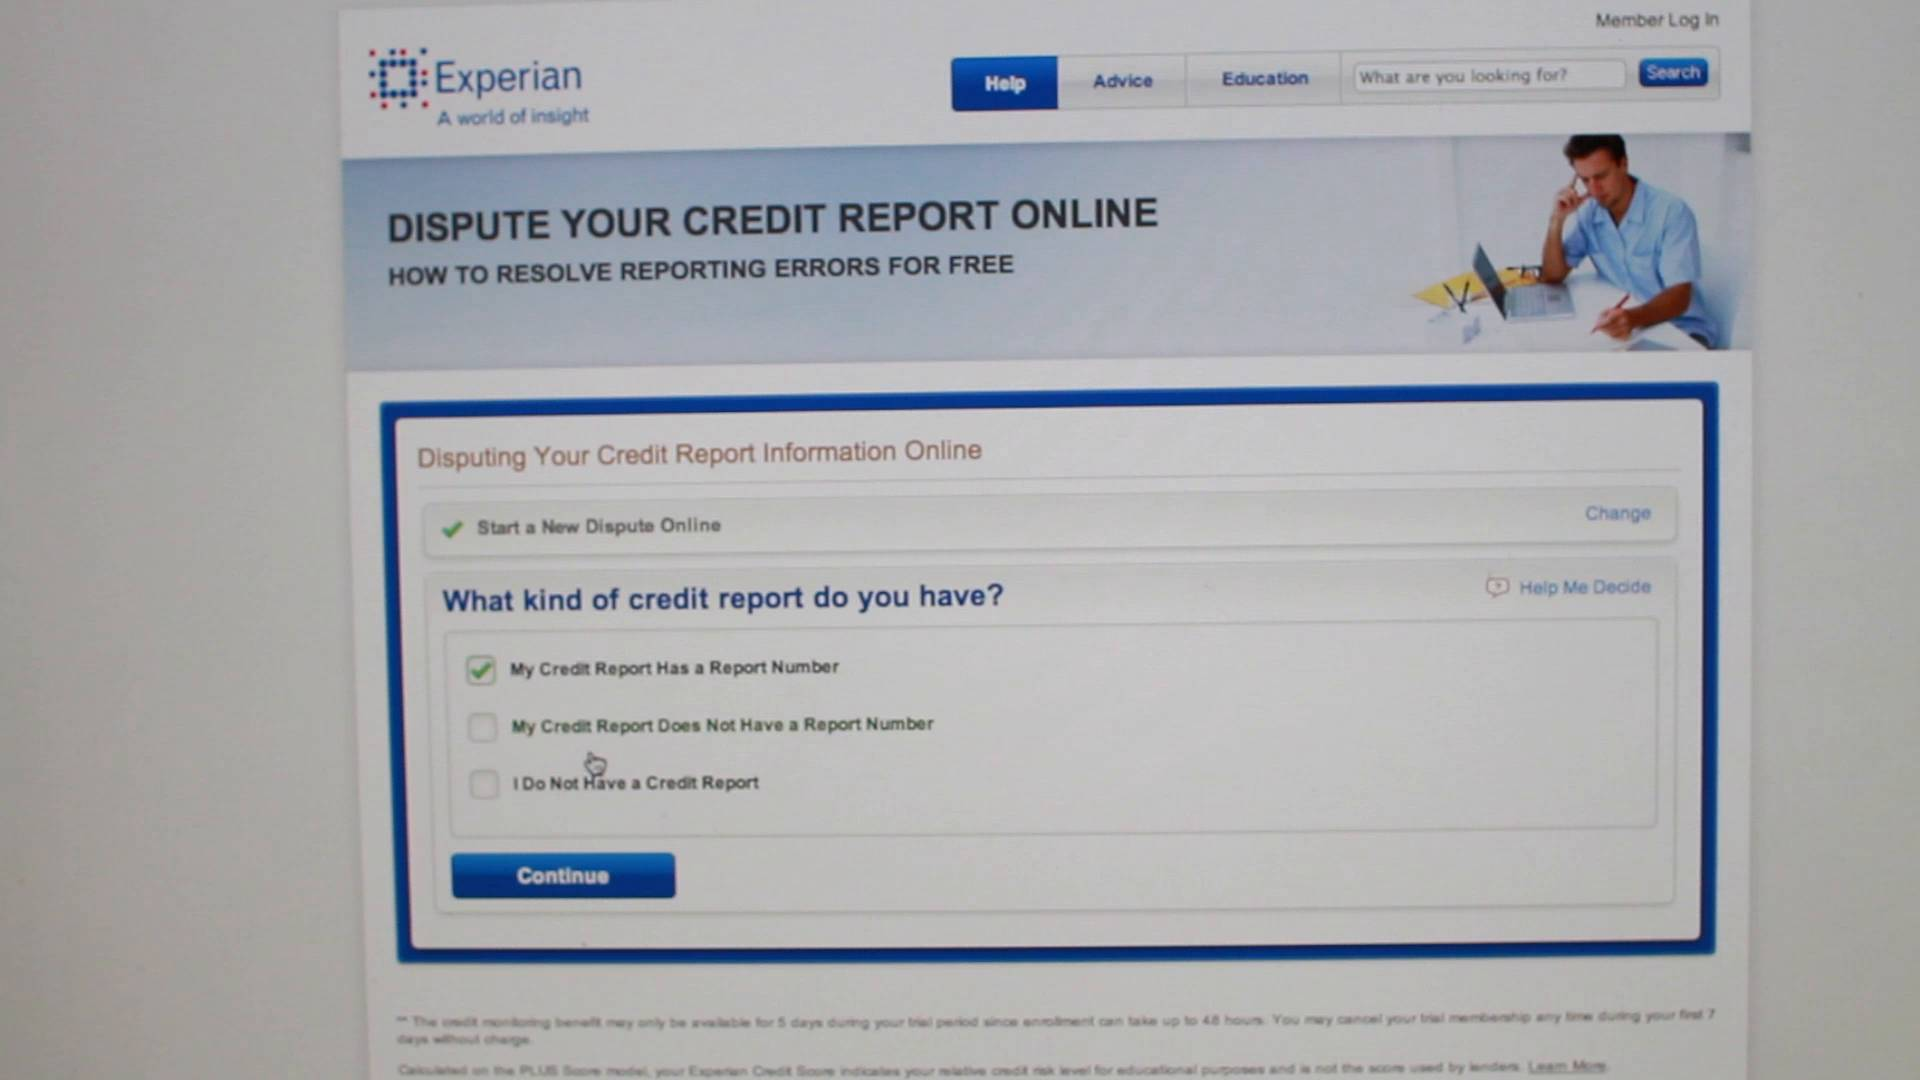 Surefire Steps To Get Errors Off Your Credit Reports - Invoice word doc online store credit cards guaranteed approval